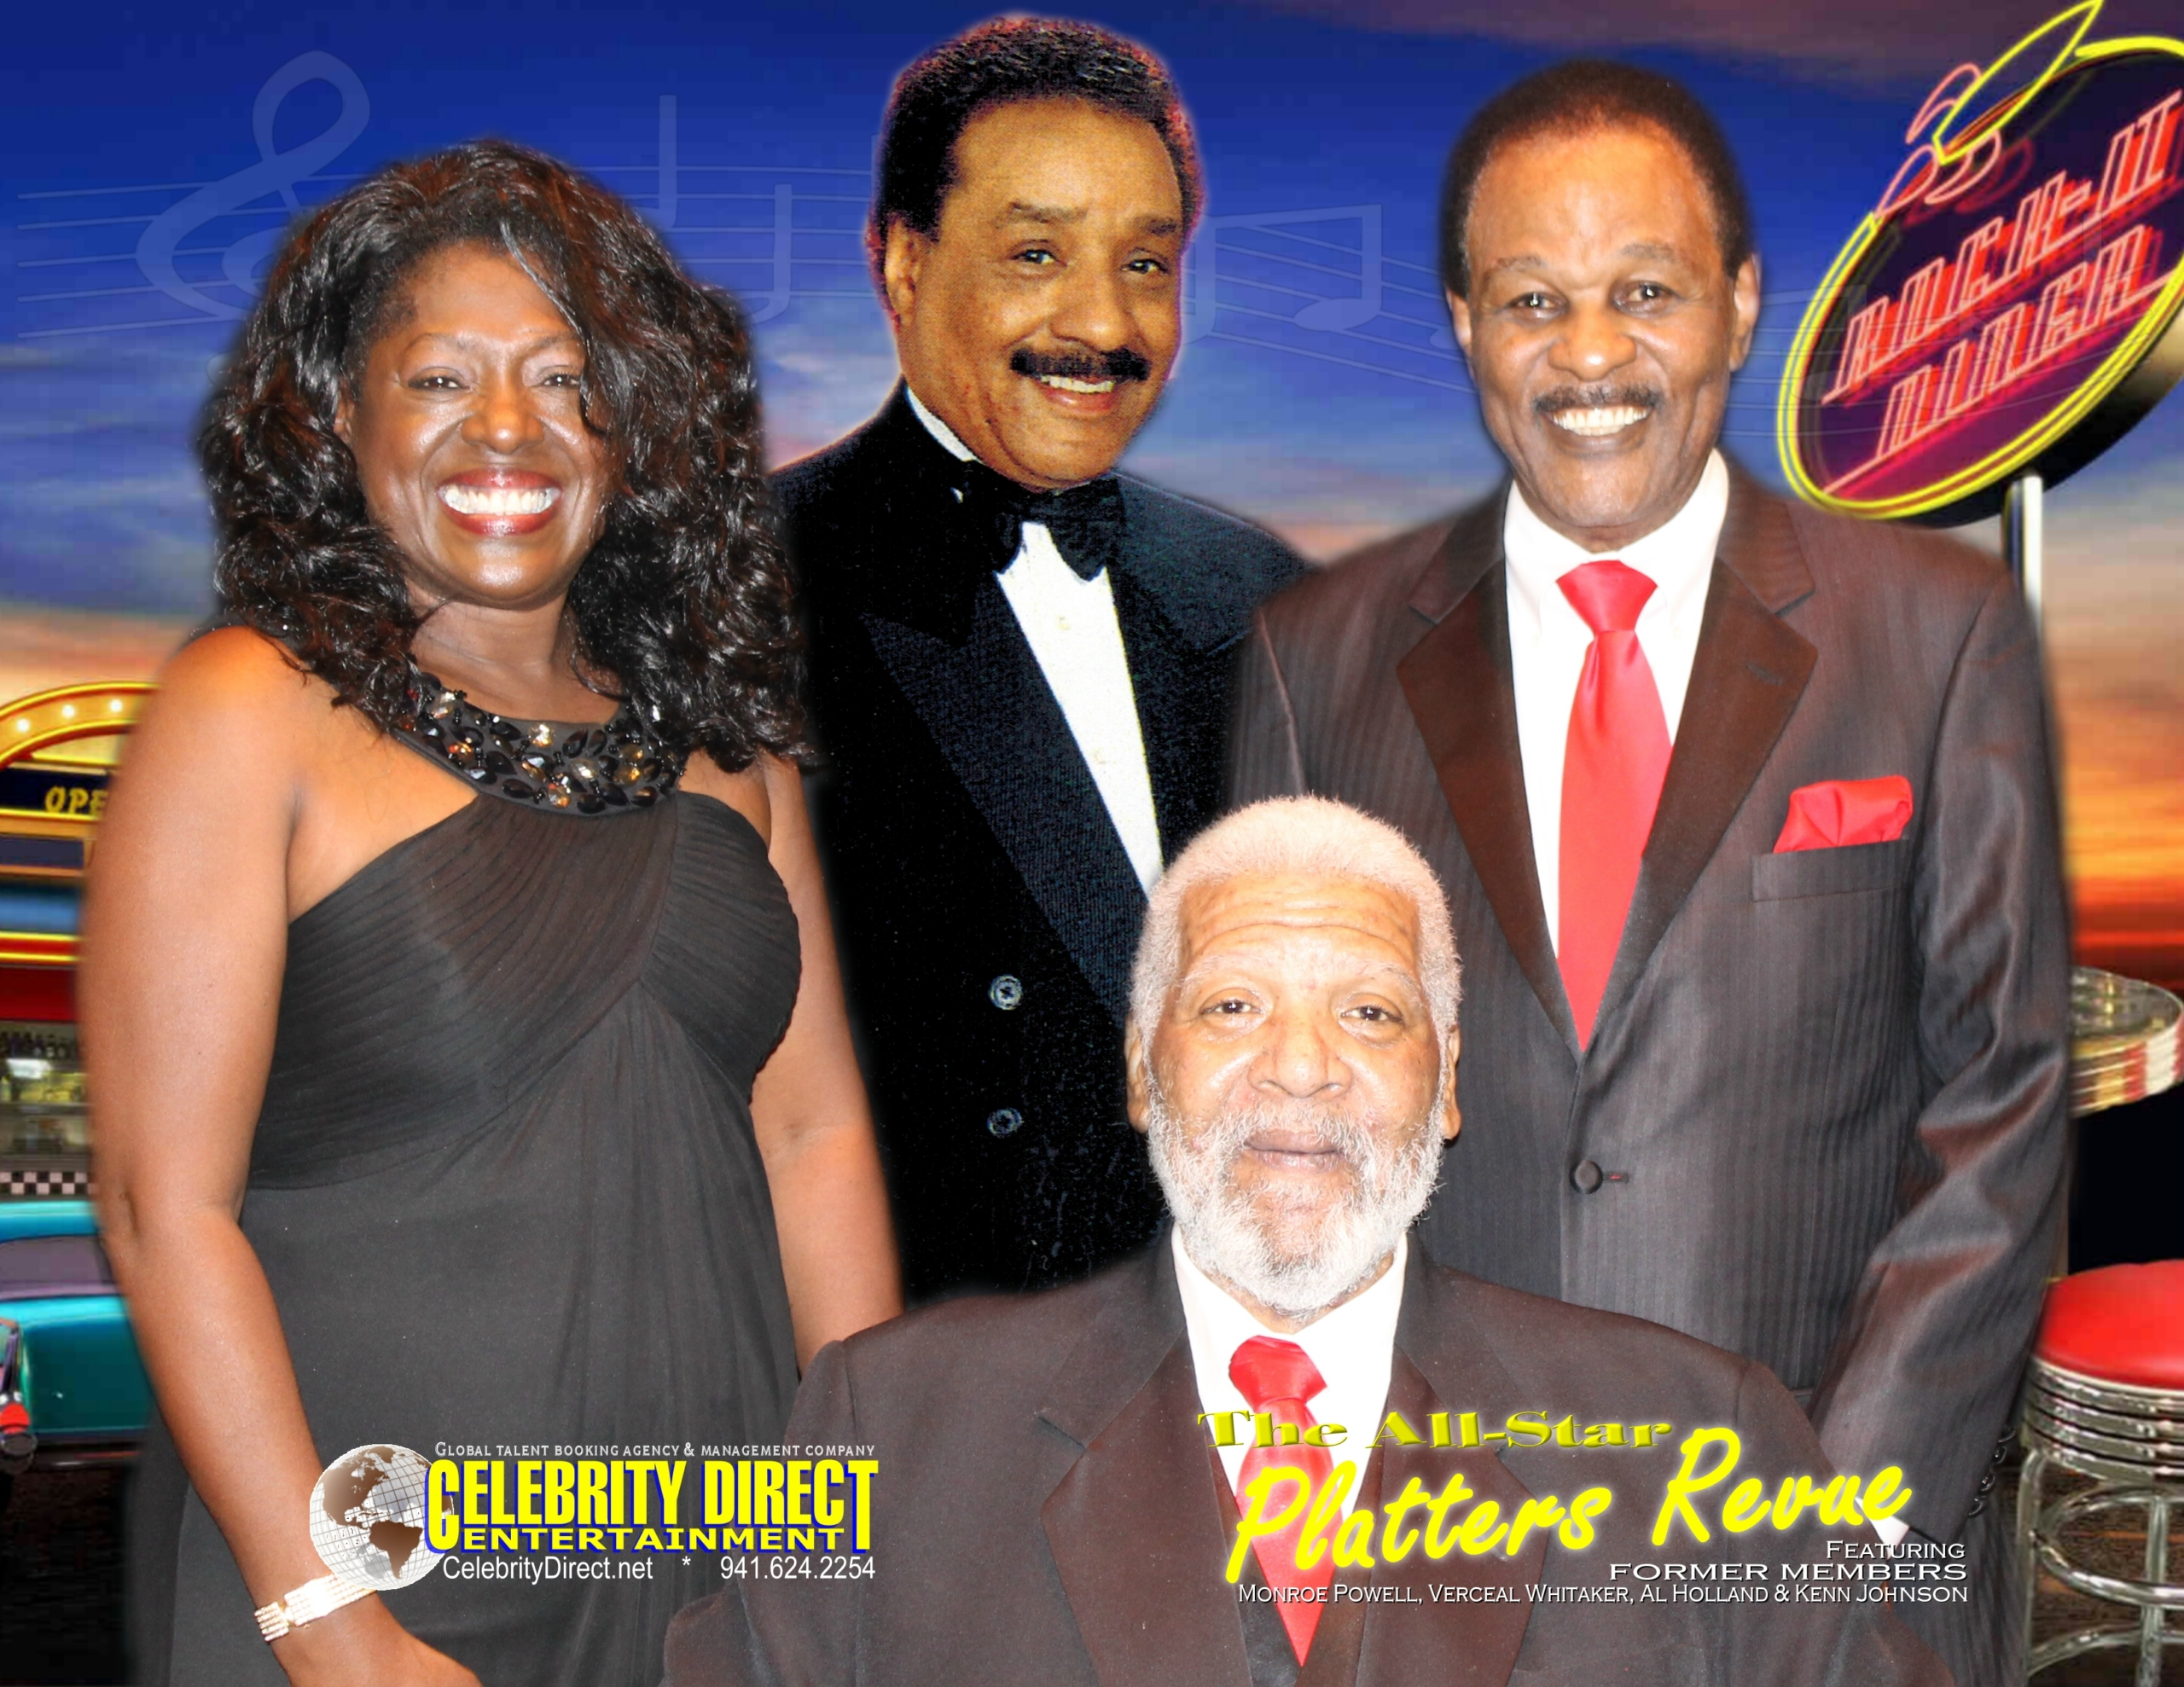 THE ALL-STAR PLATTERS REVUE